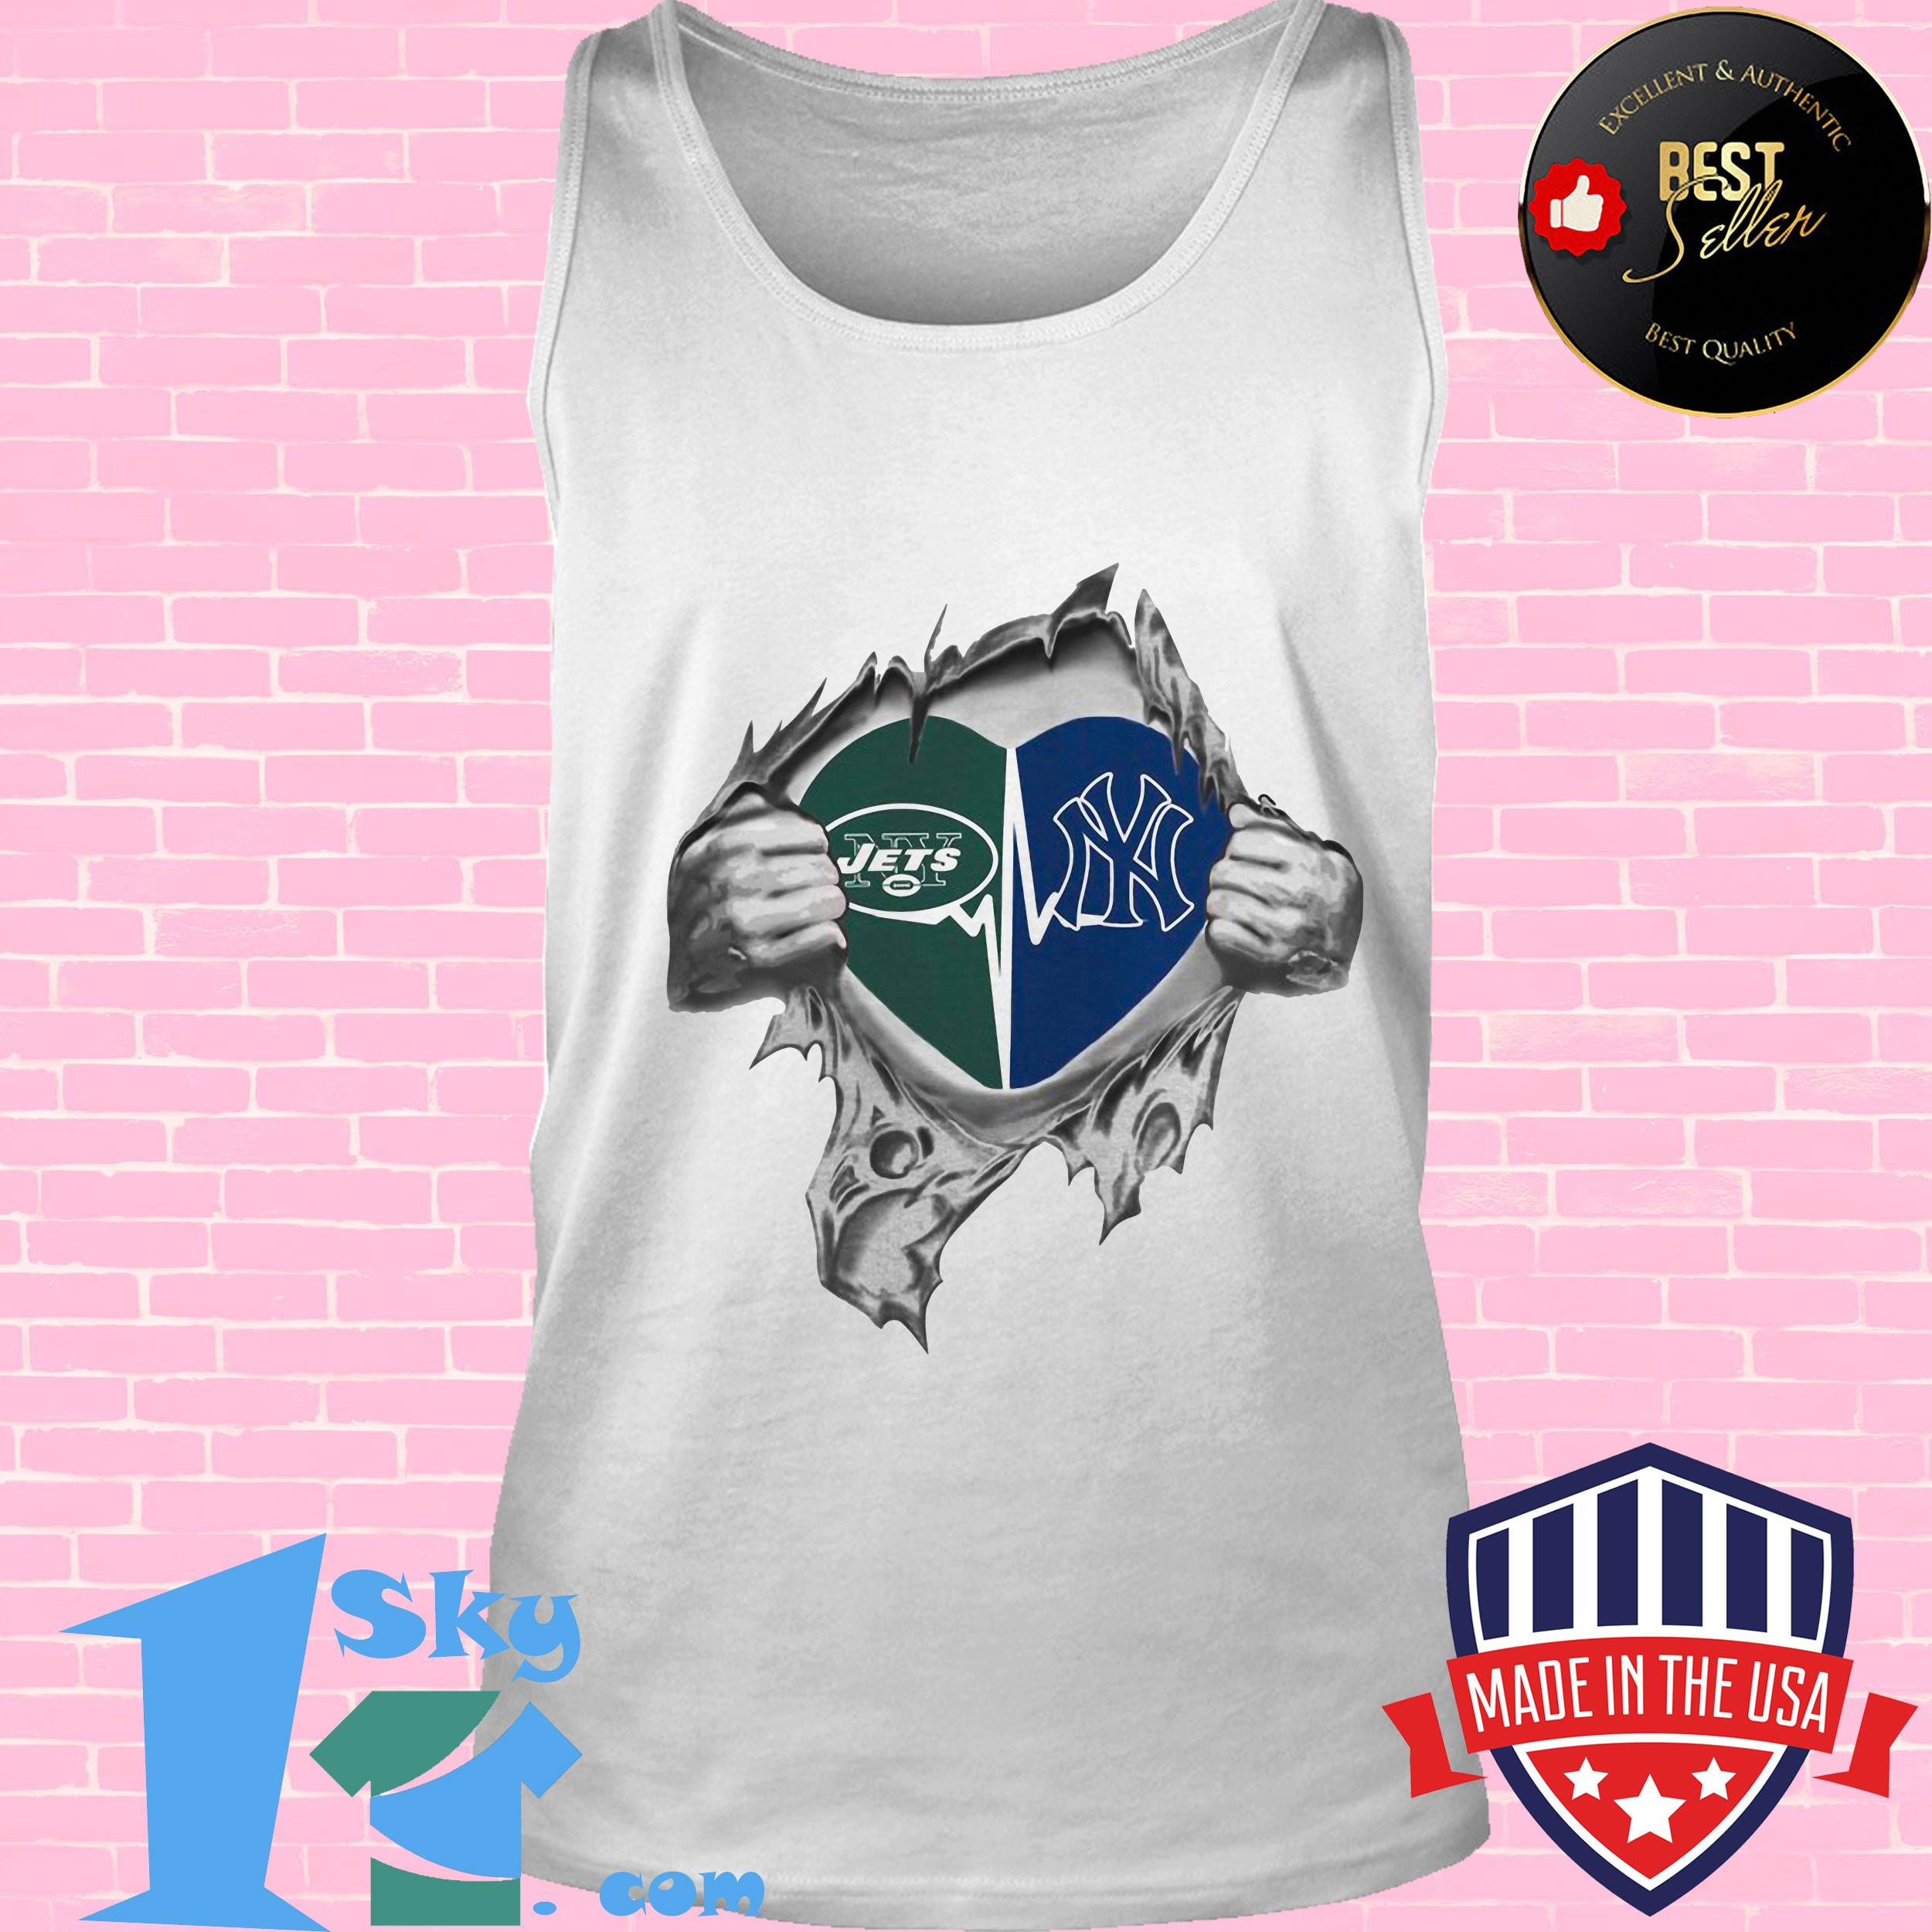 jets yankees its in my heart inside me tank top - Jets Yankees It's In My Heart Inside Me shirt